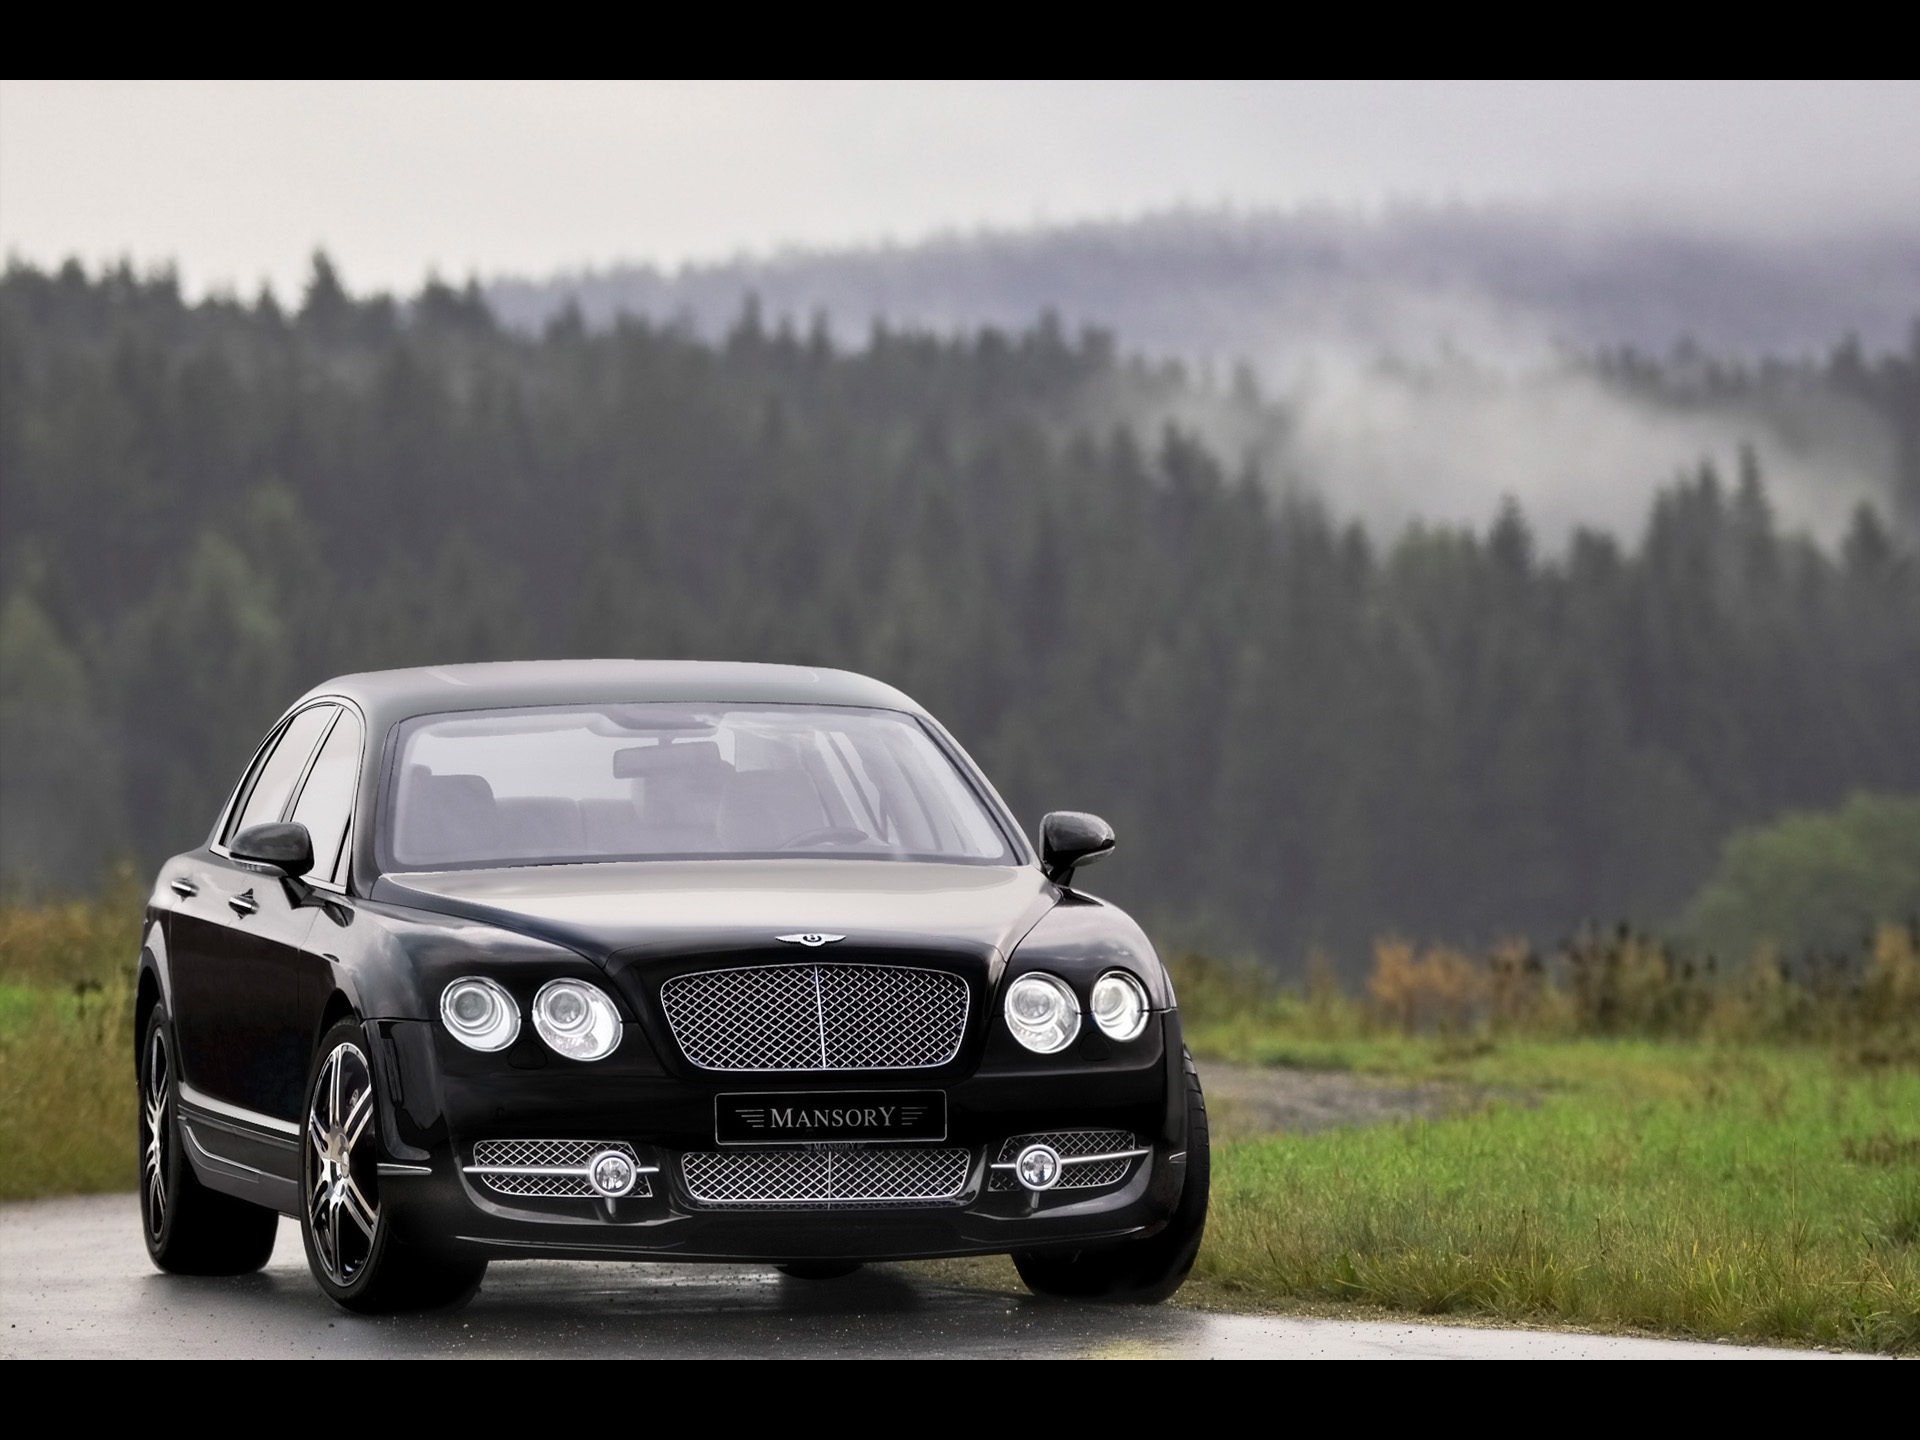 Mansory Bentley Flying Spur photo 48555